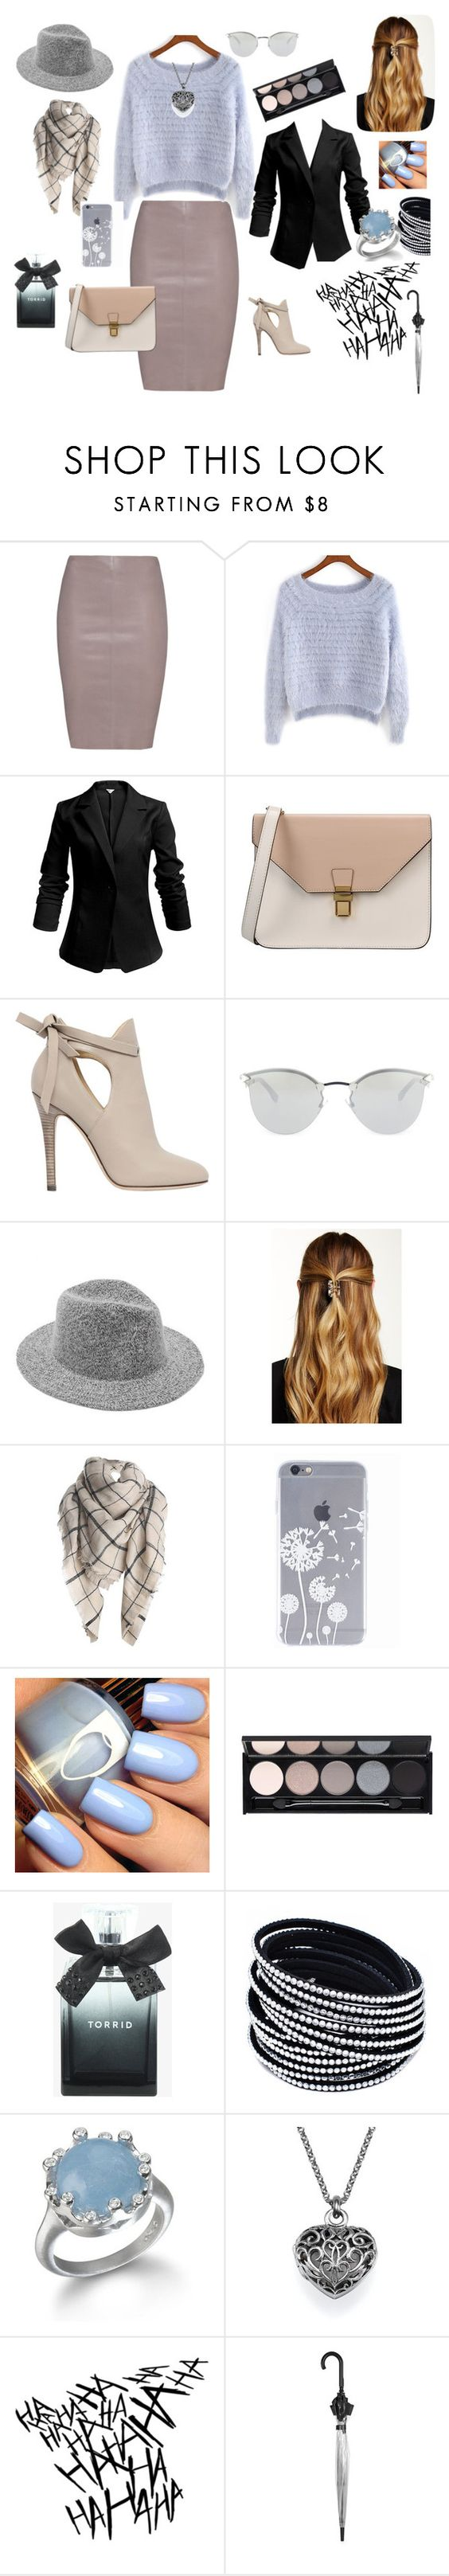 """""""Estilosa"""" by ruthxrc ❤ liked on Polyvore featuring Jitrois, 8, Jimmy Choo, Fendi, Natasha Accessories, Witchery, Torrid and Topshop"""